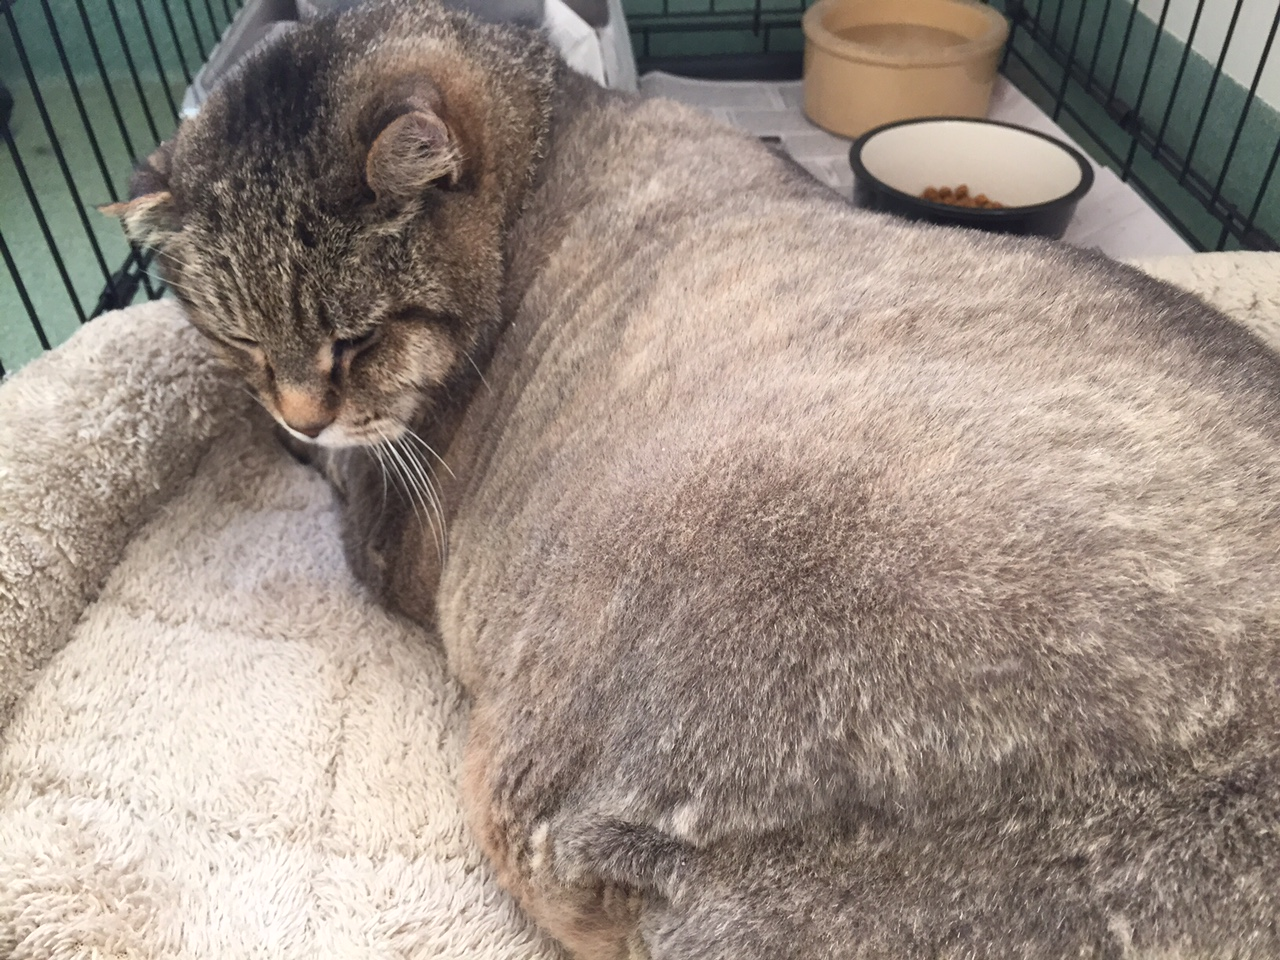 26-pound cat dies after being abandoned in local park